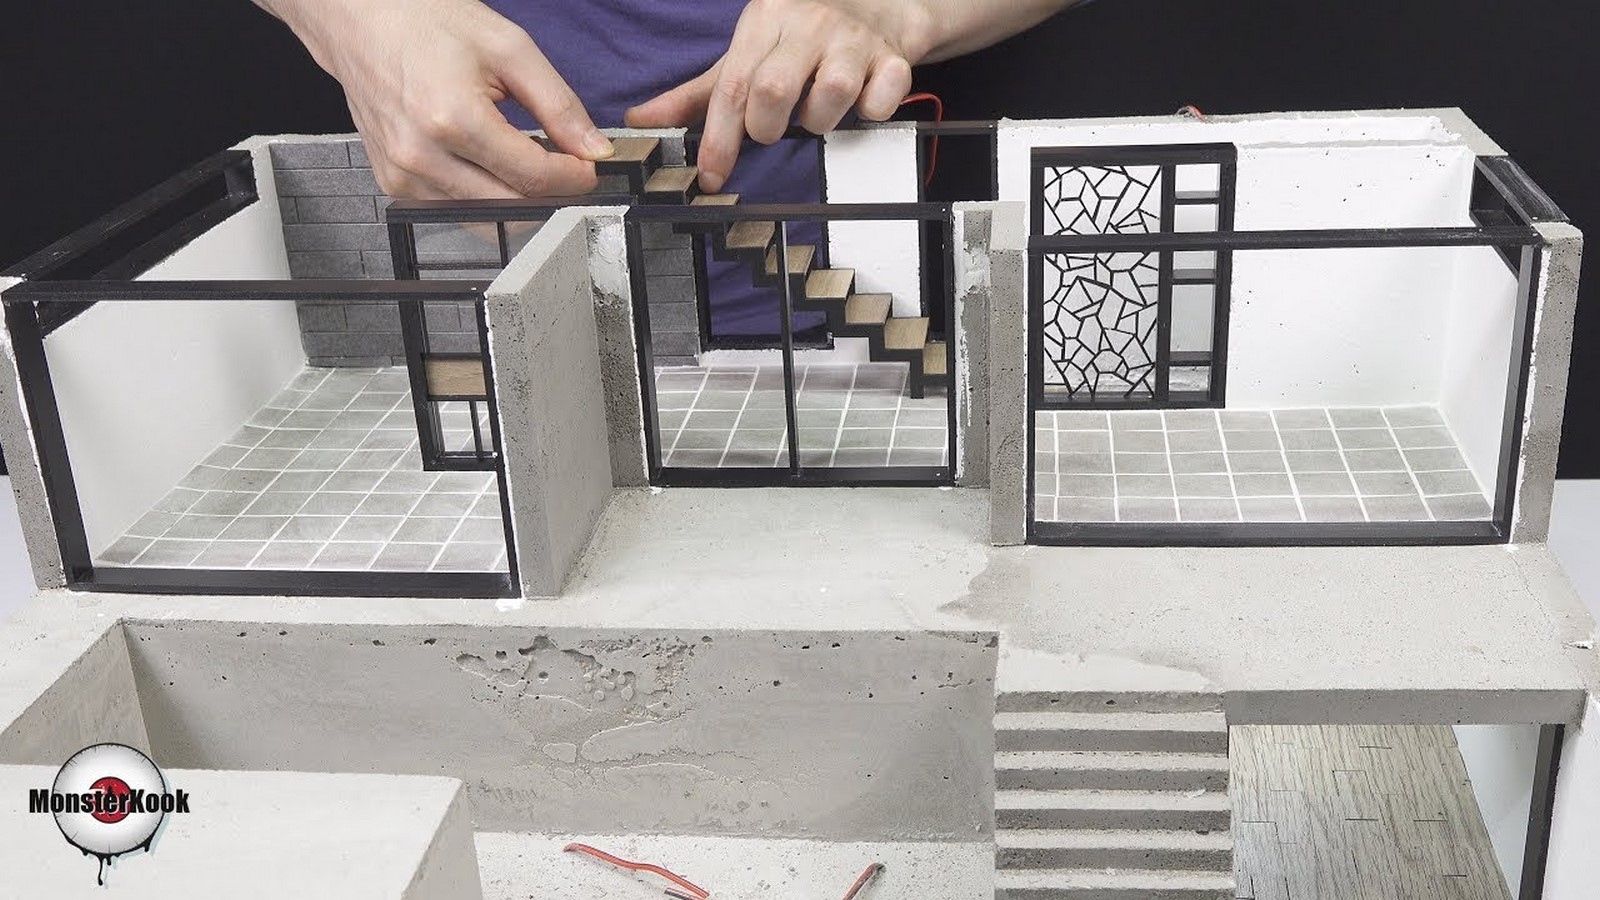 10 youtubers to watch for architectural model making-Monster Kook - Sheet1